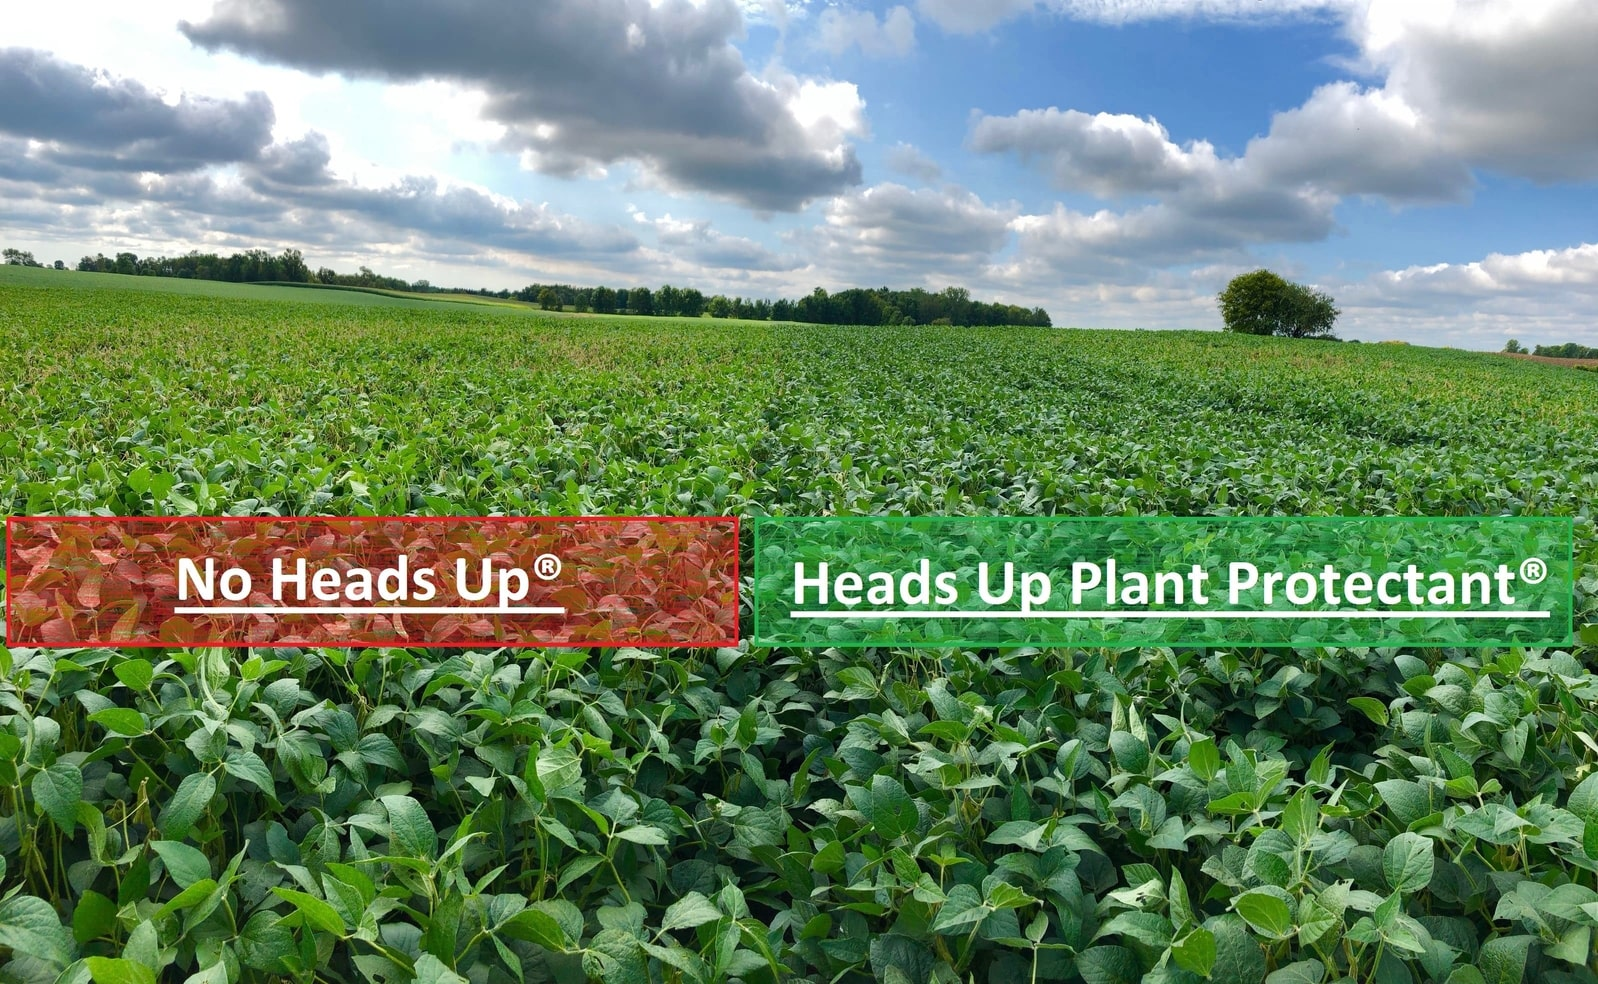 White Mold Base vs Heads Up